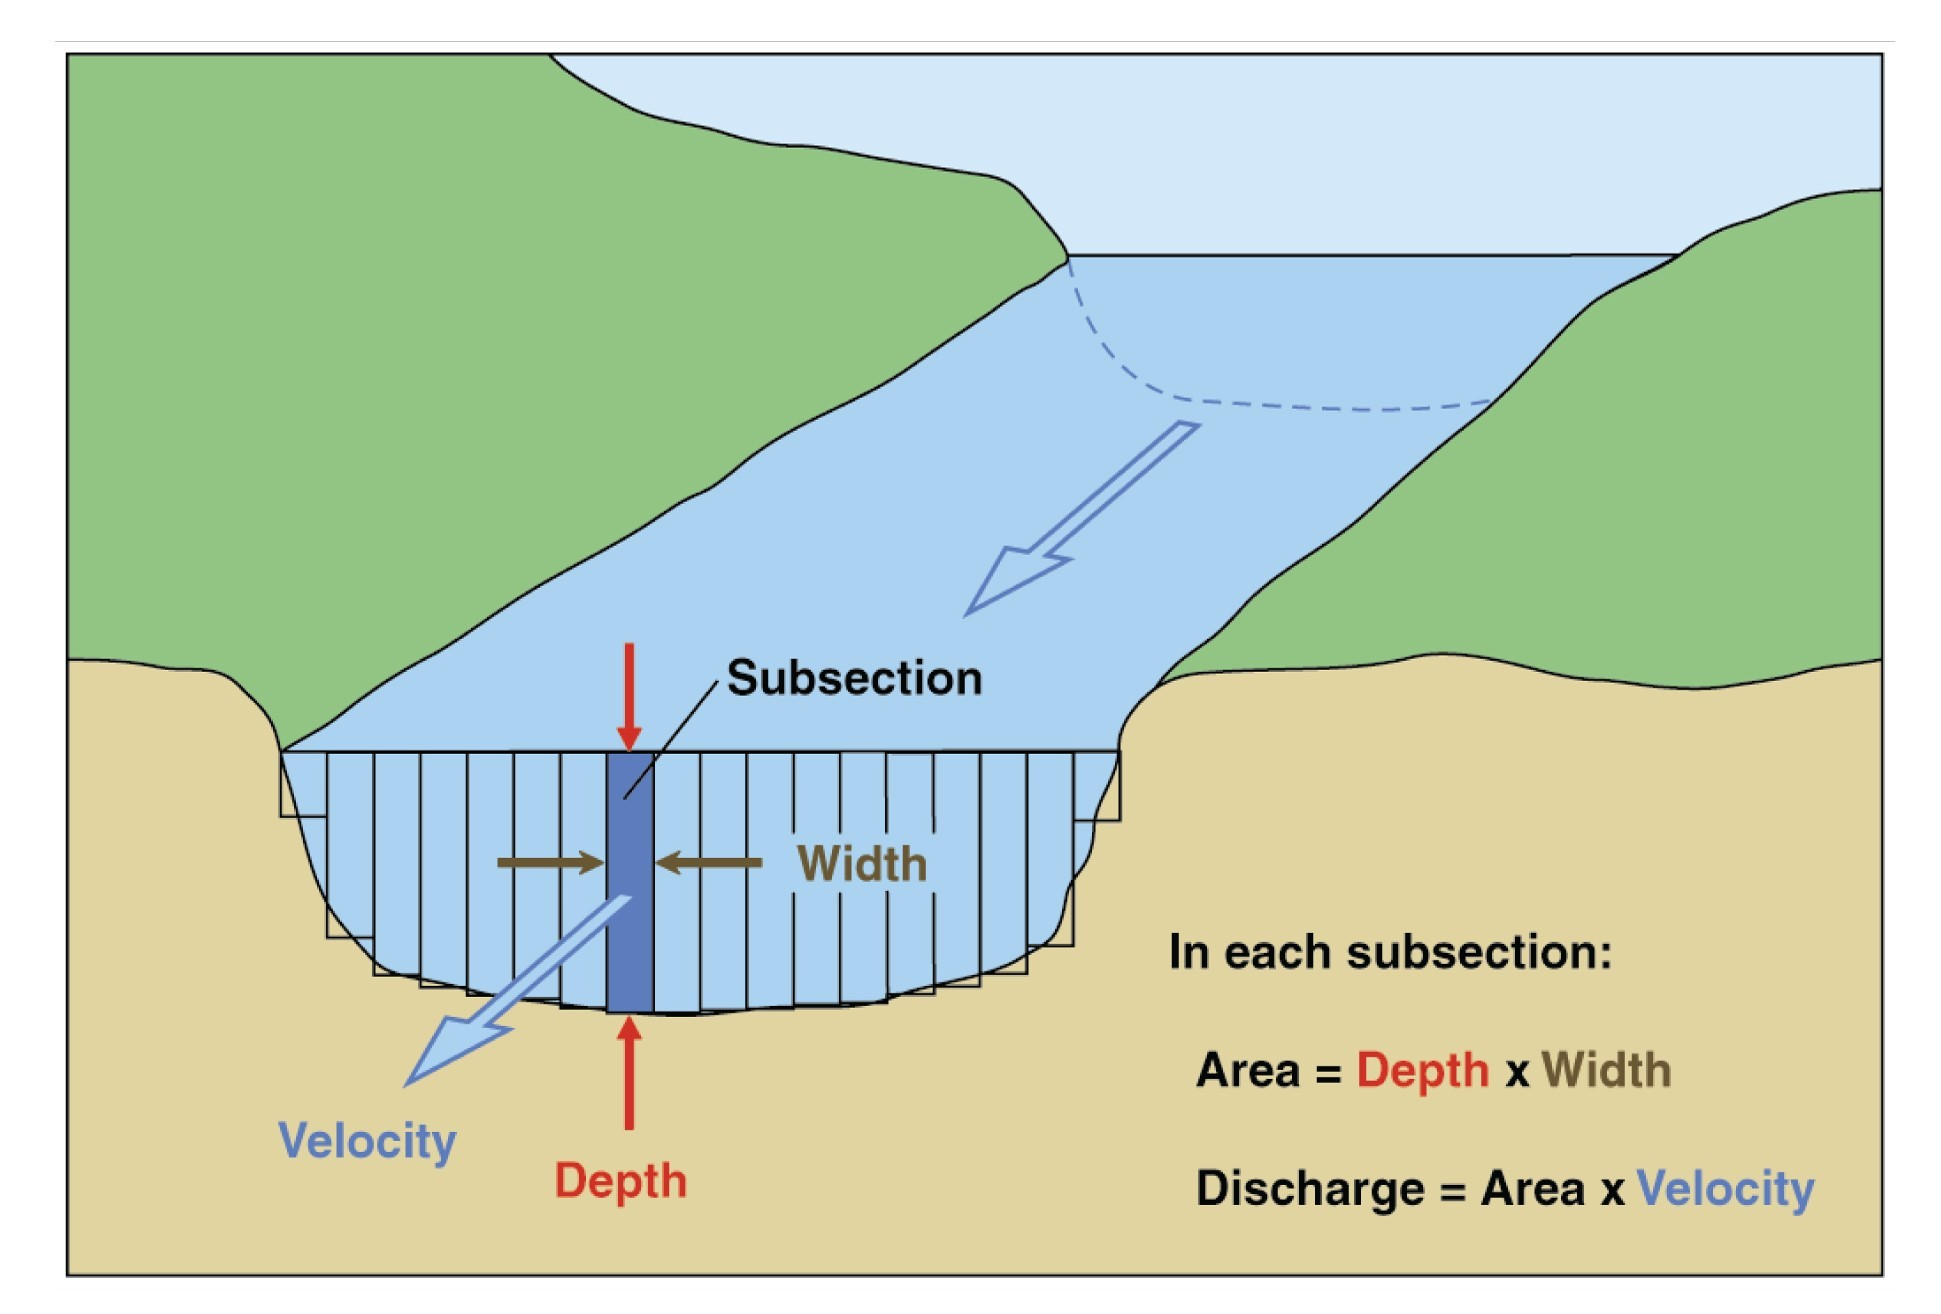 Cross section of flowing water showing how depth, width and velocity are measured. The flowing water is split into subsections. In each subsection the Area is equal to the Depth x Width then the discharge is equal to Area x Velocity.